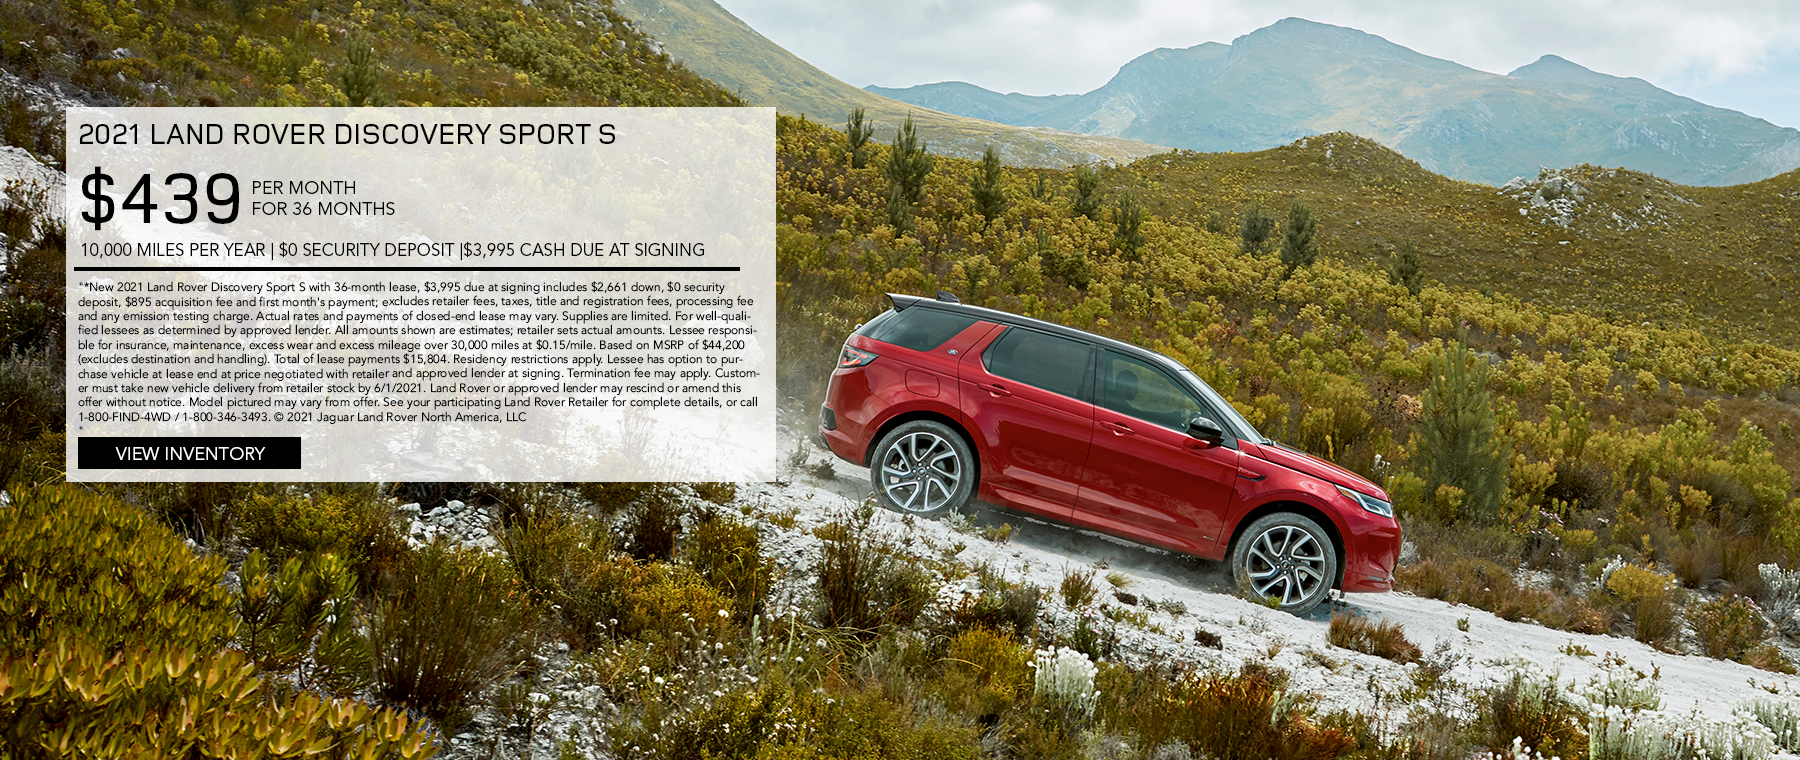 May 2021 Discovery Sport